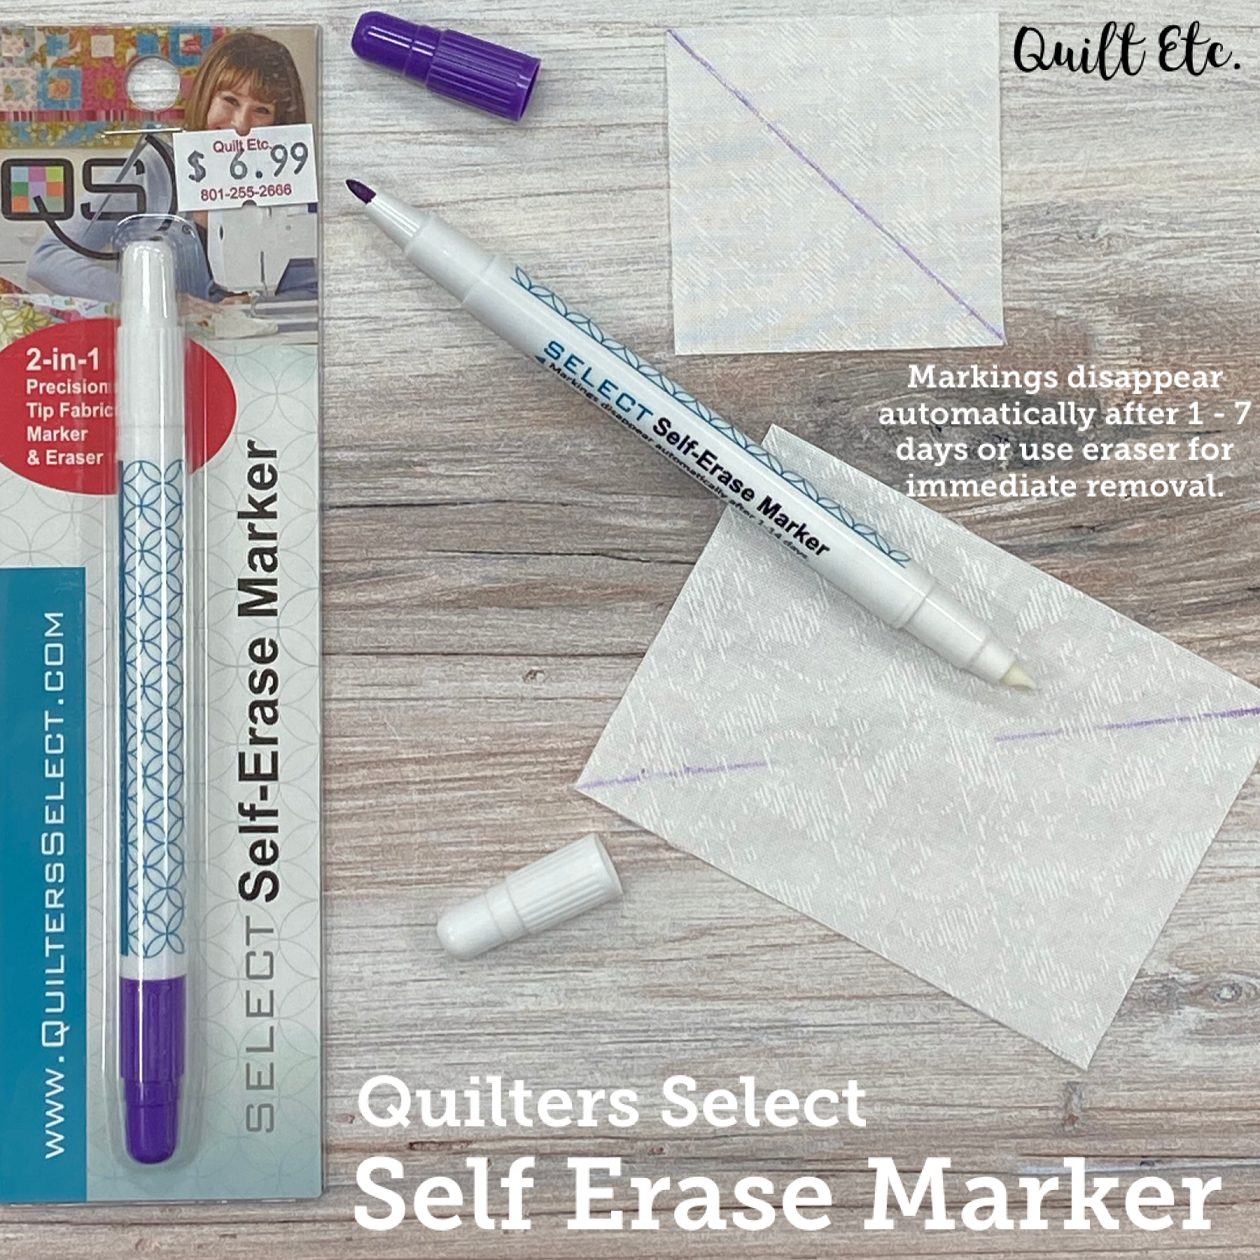 Self Erase Marker